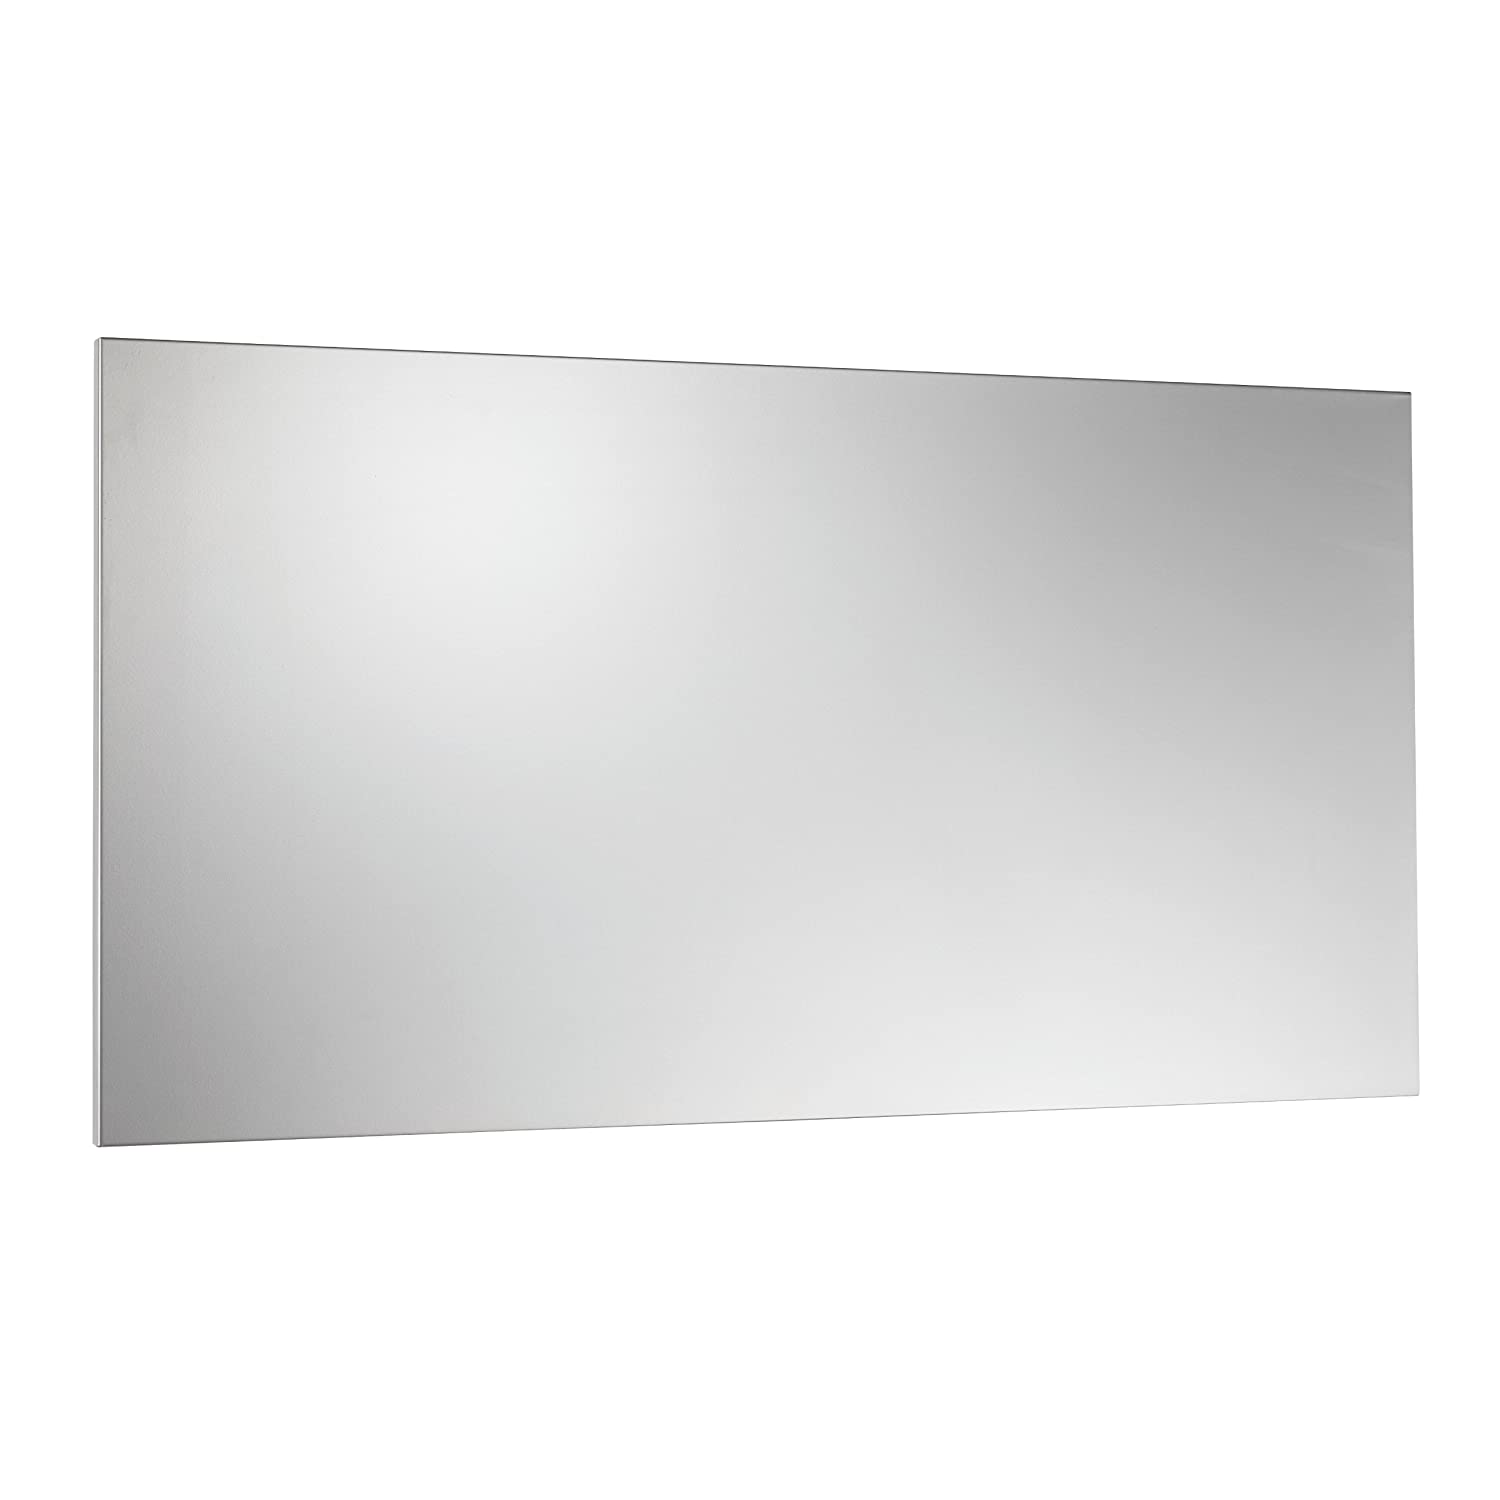 Metal Dry Erase Board : Stainless steel dry erase boards clean and strong